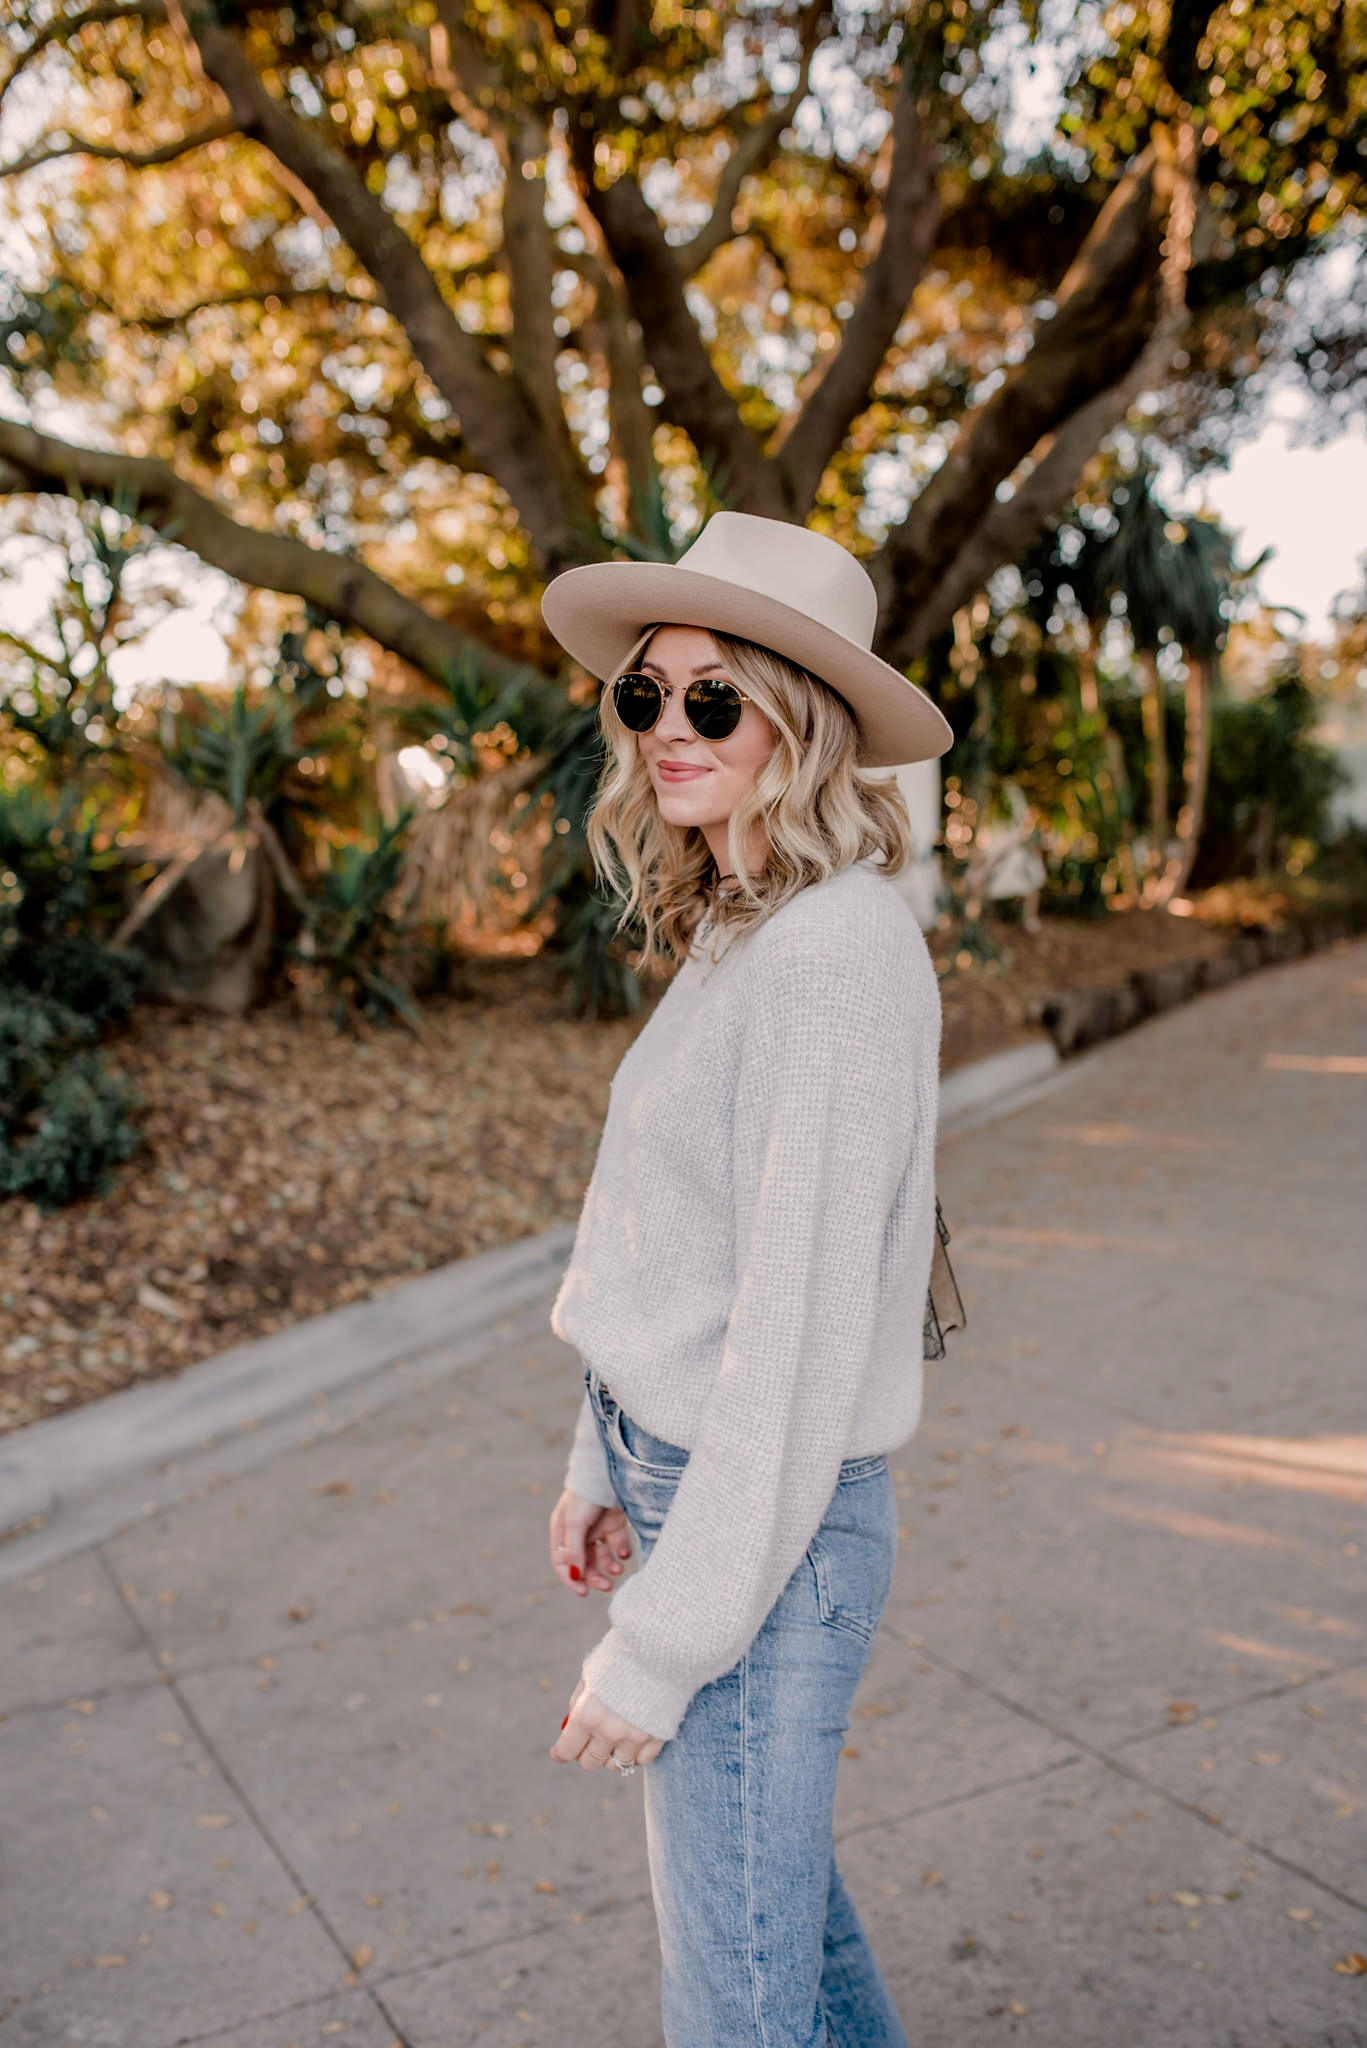 top 10 items of 2020 | Top Items by popular San Diego fashion blog, Navy Grace: image of a woman wearing a grey sweater, tan Gigi Pip fedora, jeans, and tan suede ankle boots.